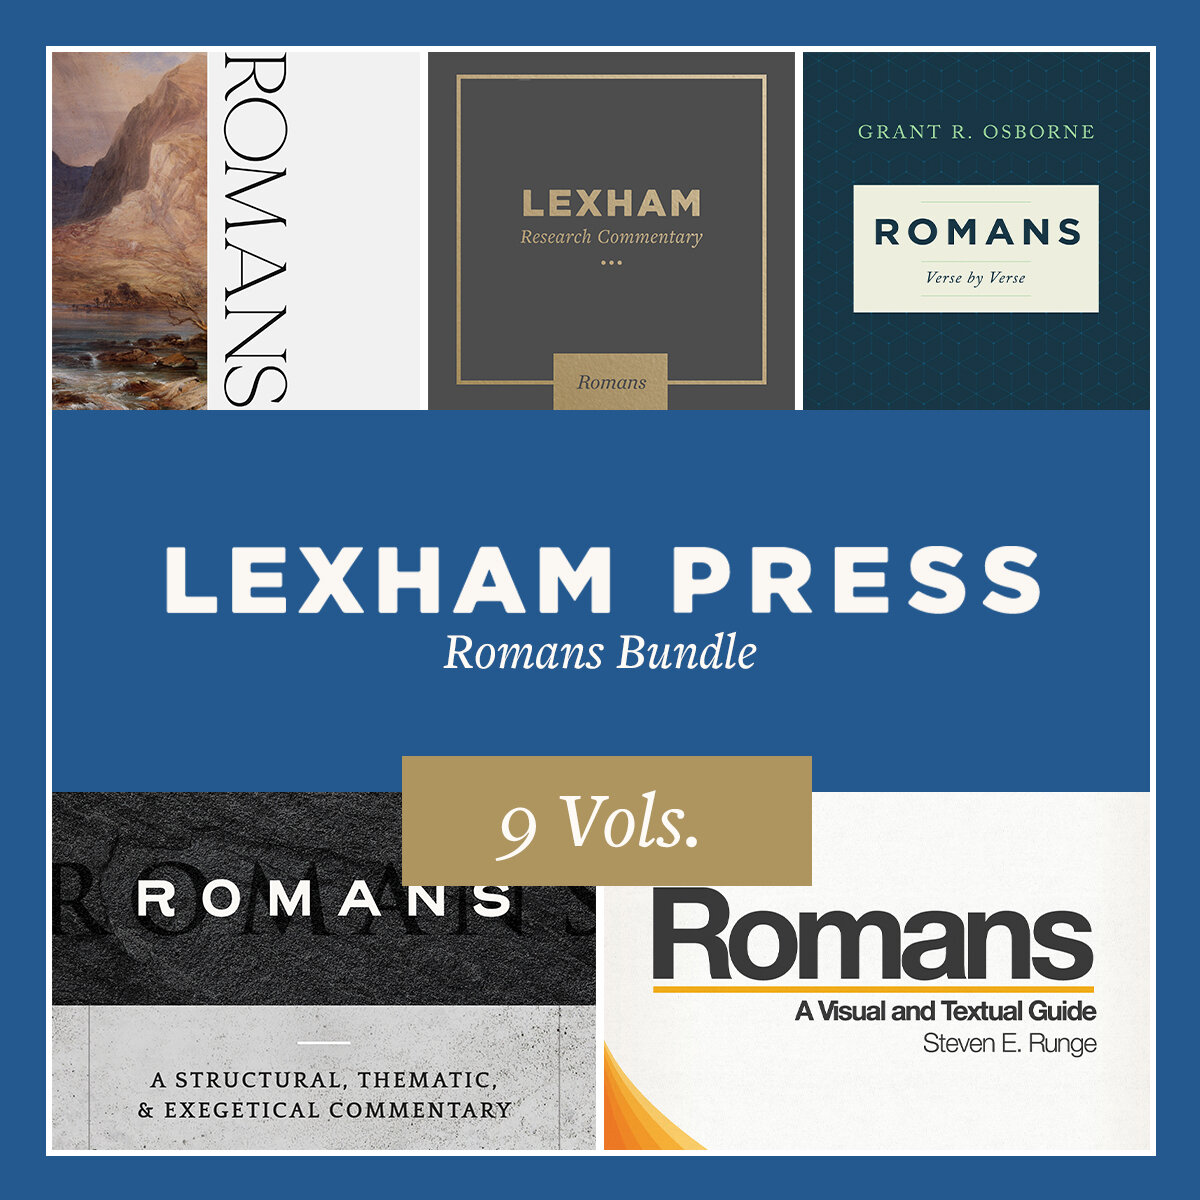 Lexham Press Romans Bundle (9 vols.)